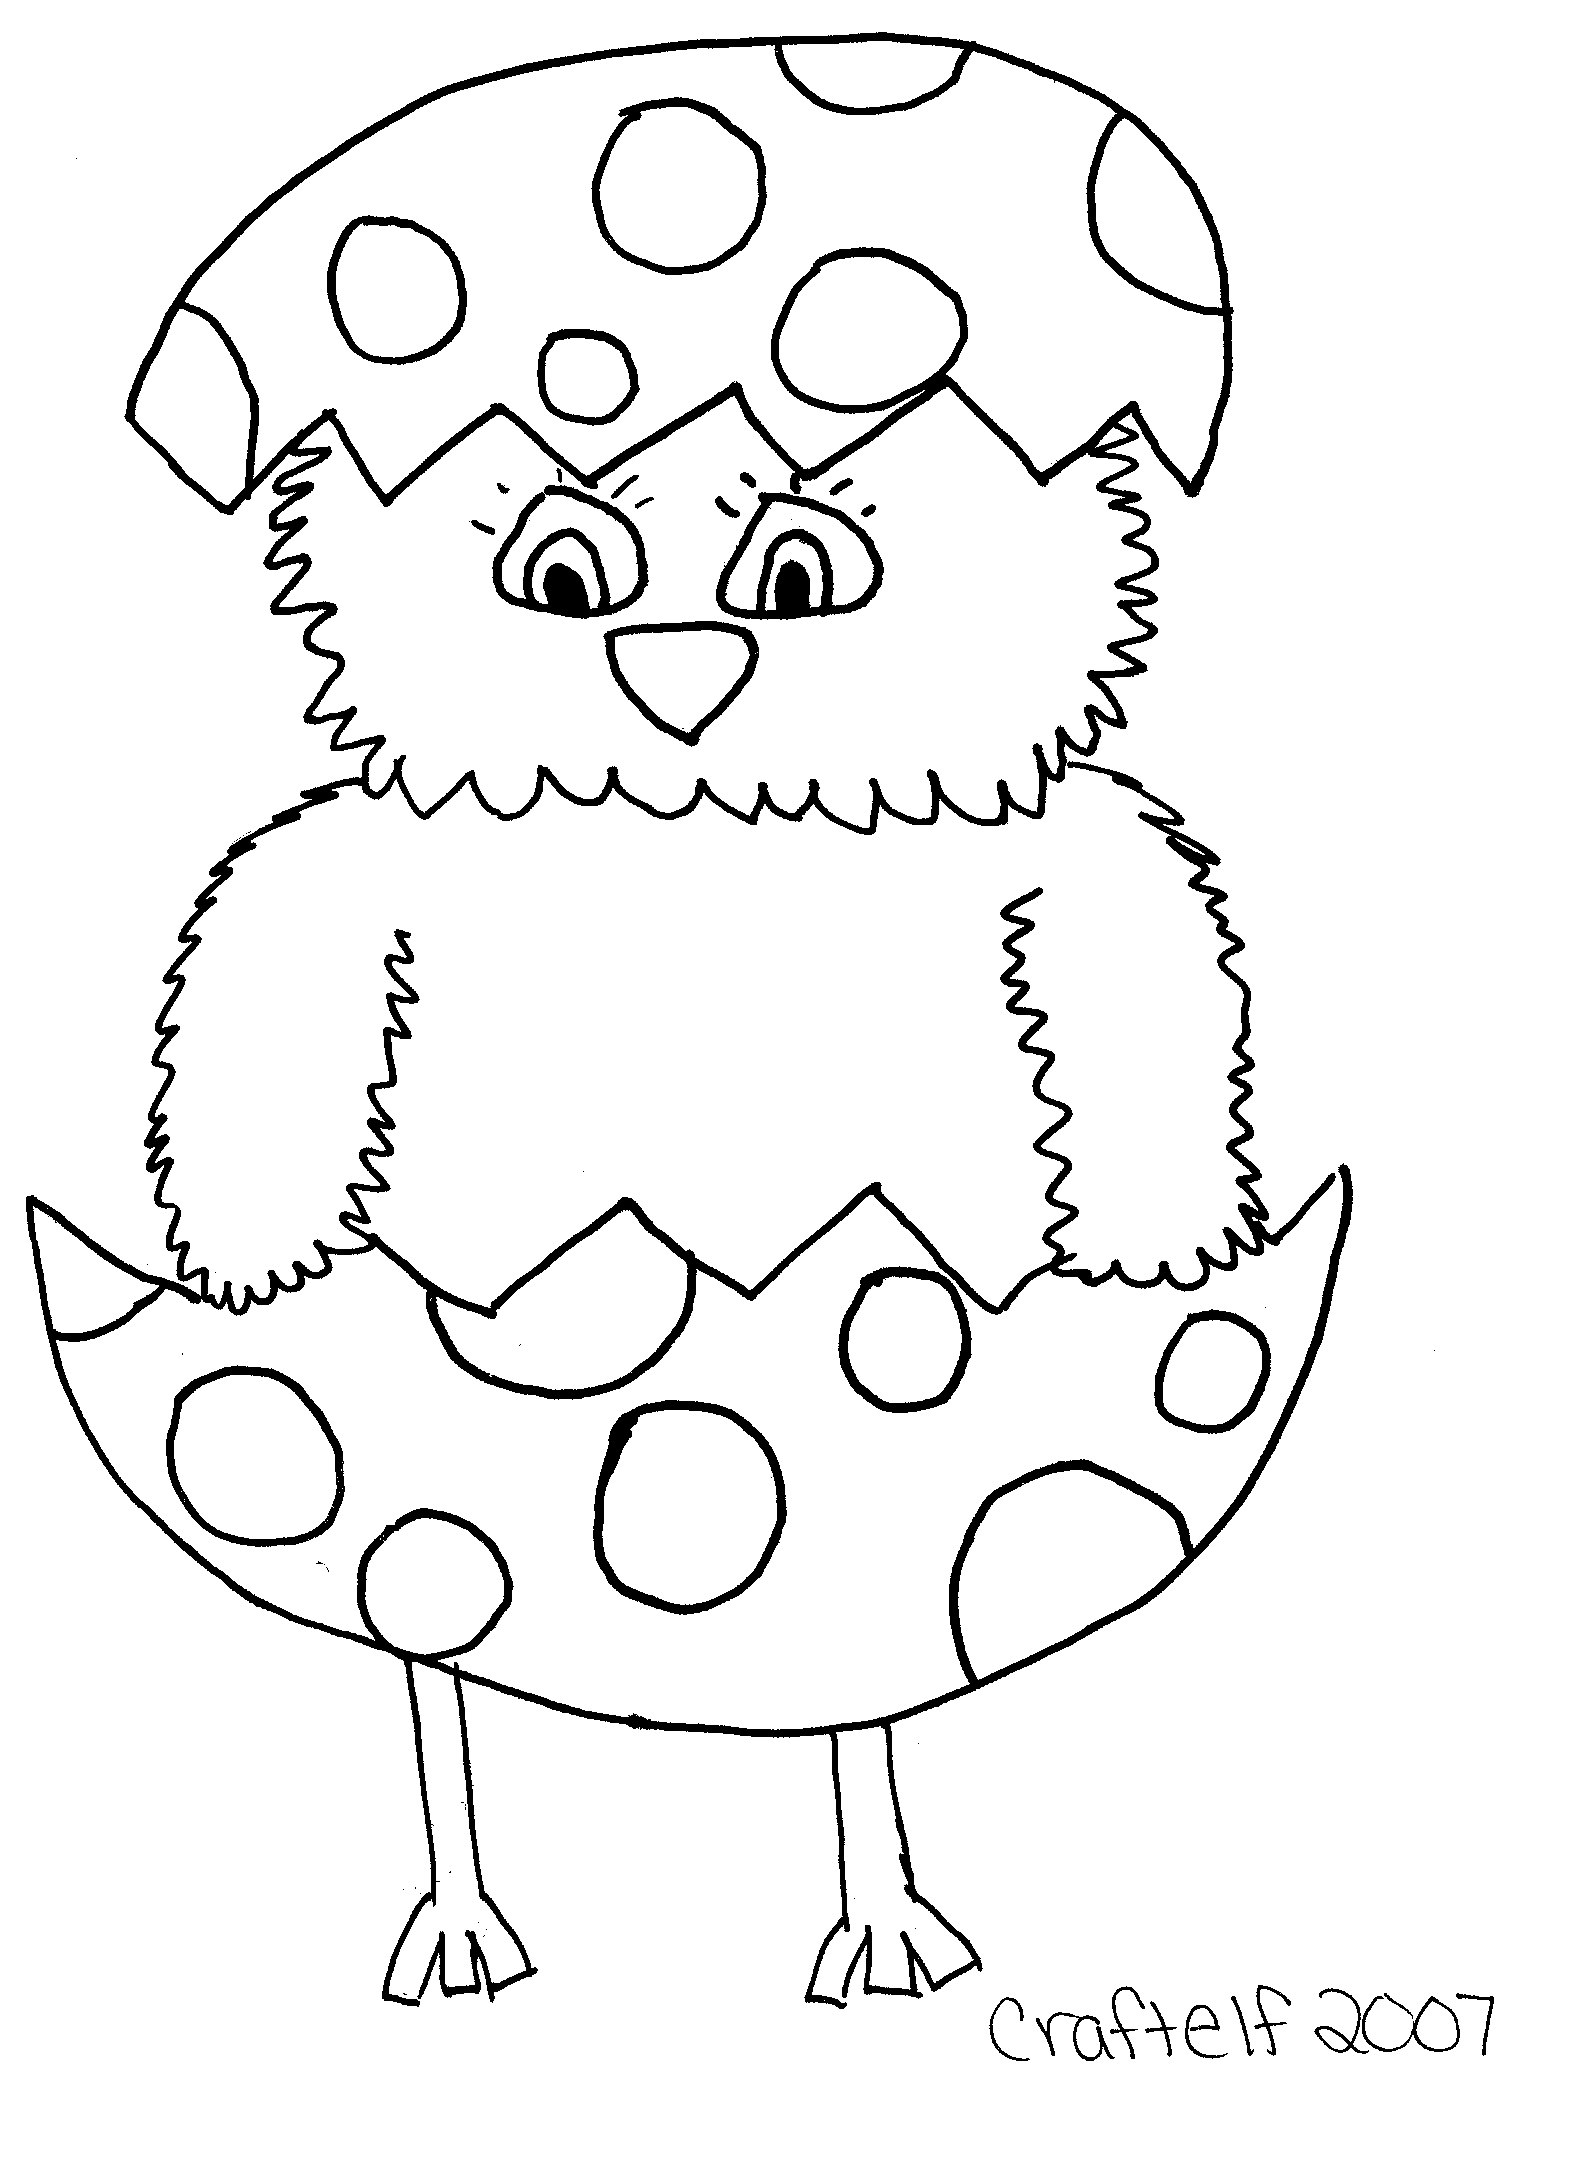 Coloring Pages : Religeous Easter Coloring Pages Printable Free For - Free Printable Easter Coloring Pages